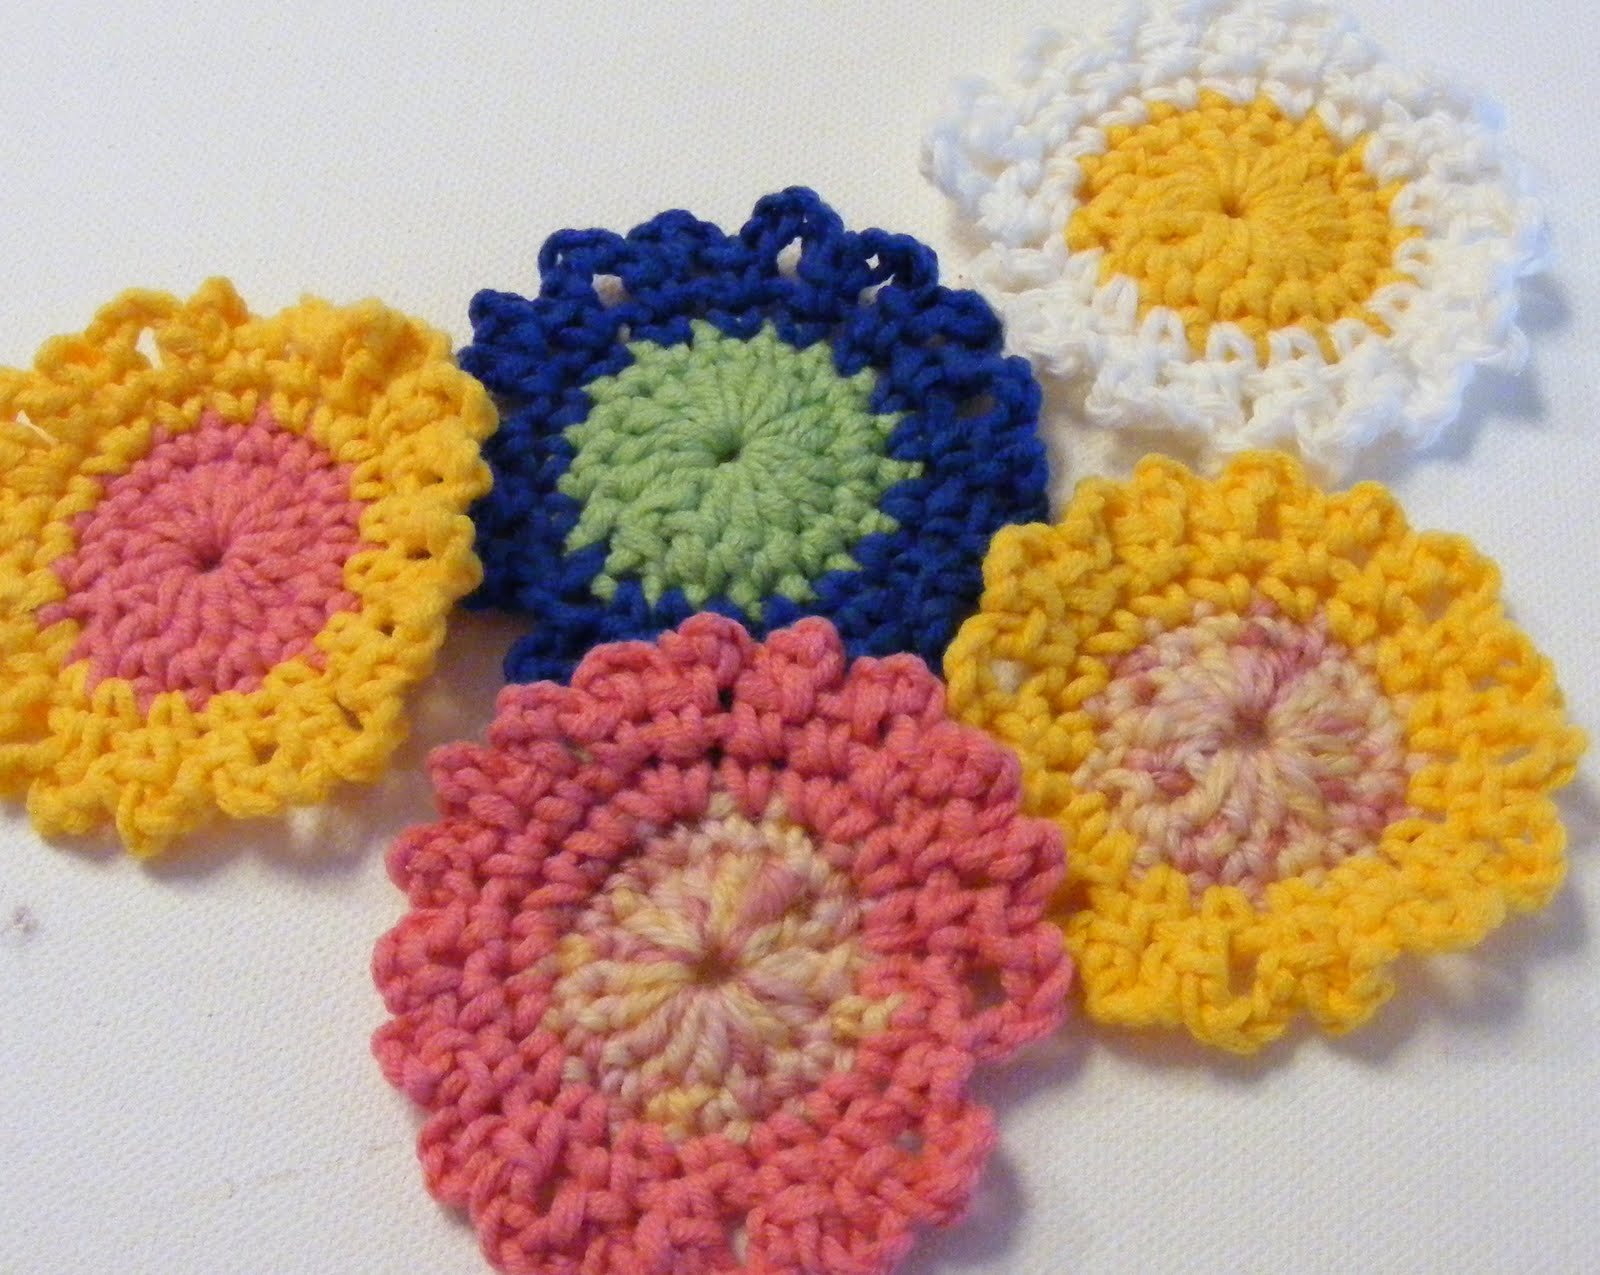 Crochet Flower Pattern Pictures : Free Crochet Flower Tutorial